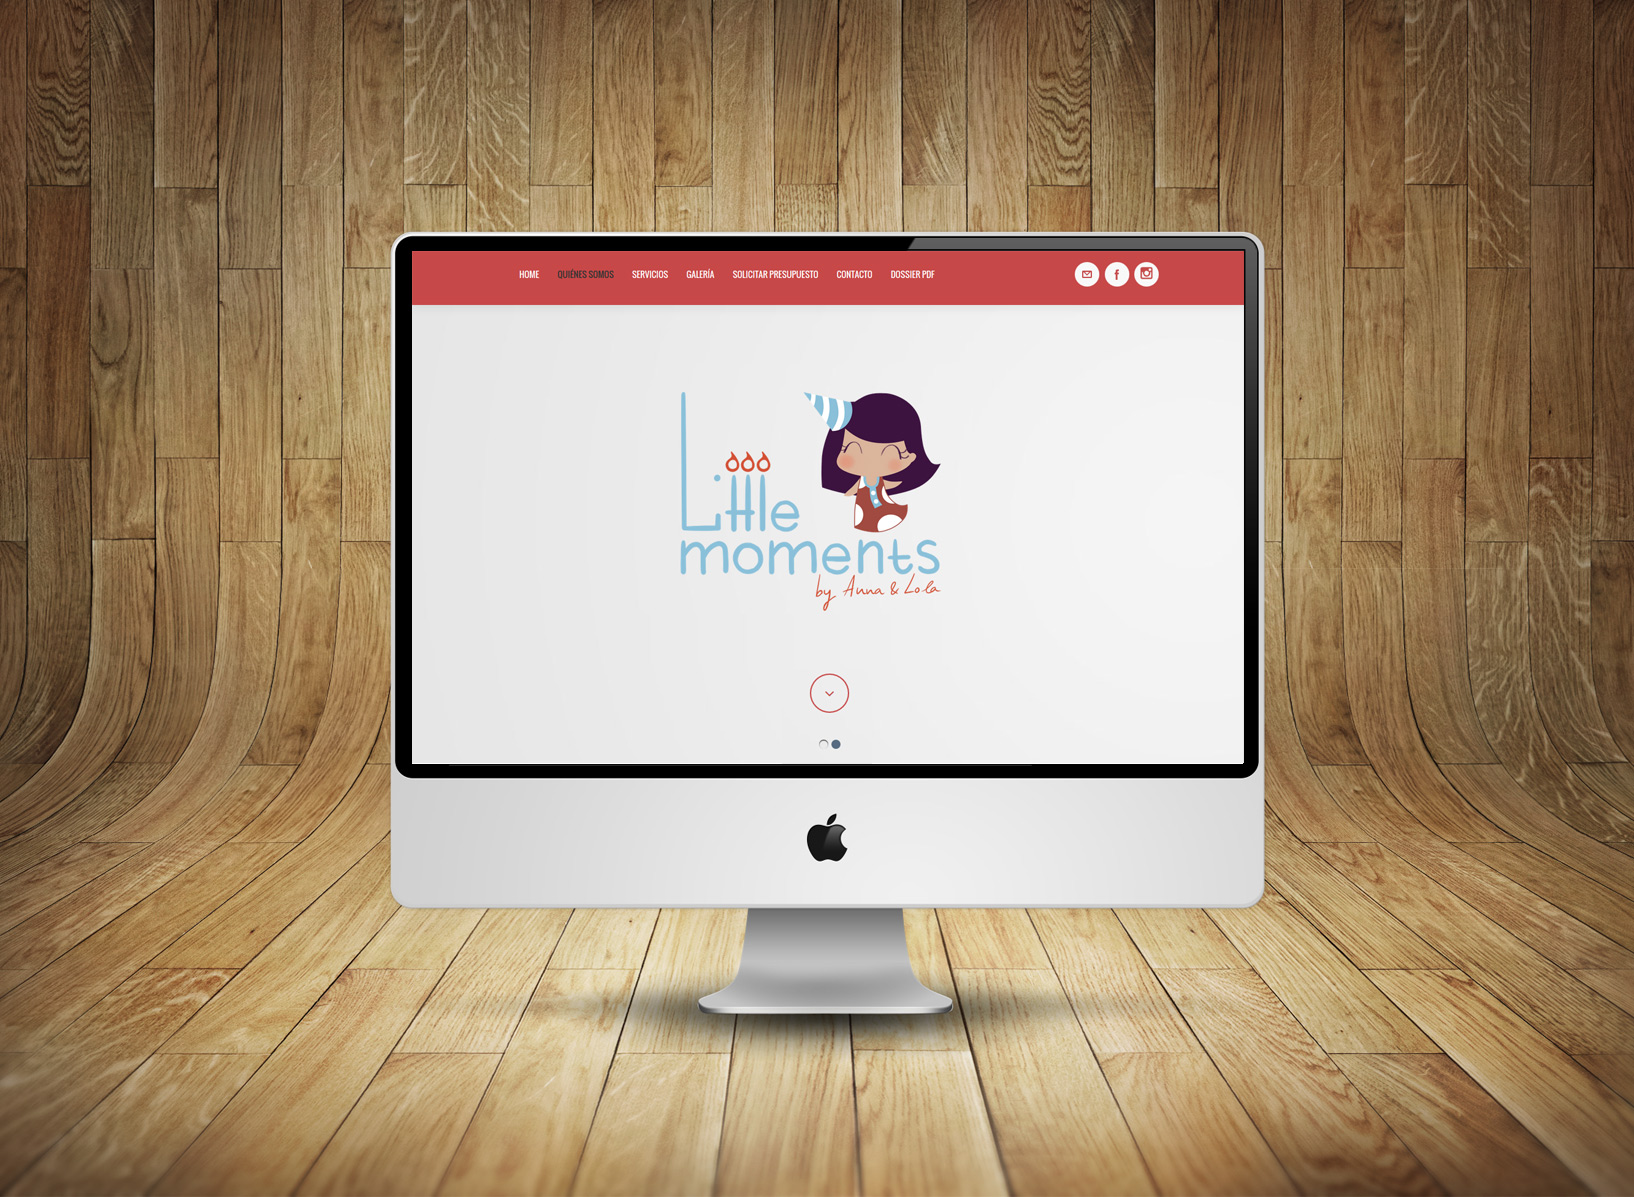 Implementación wordpress littlemoments.es